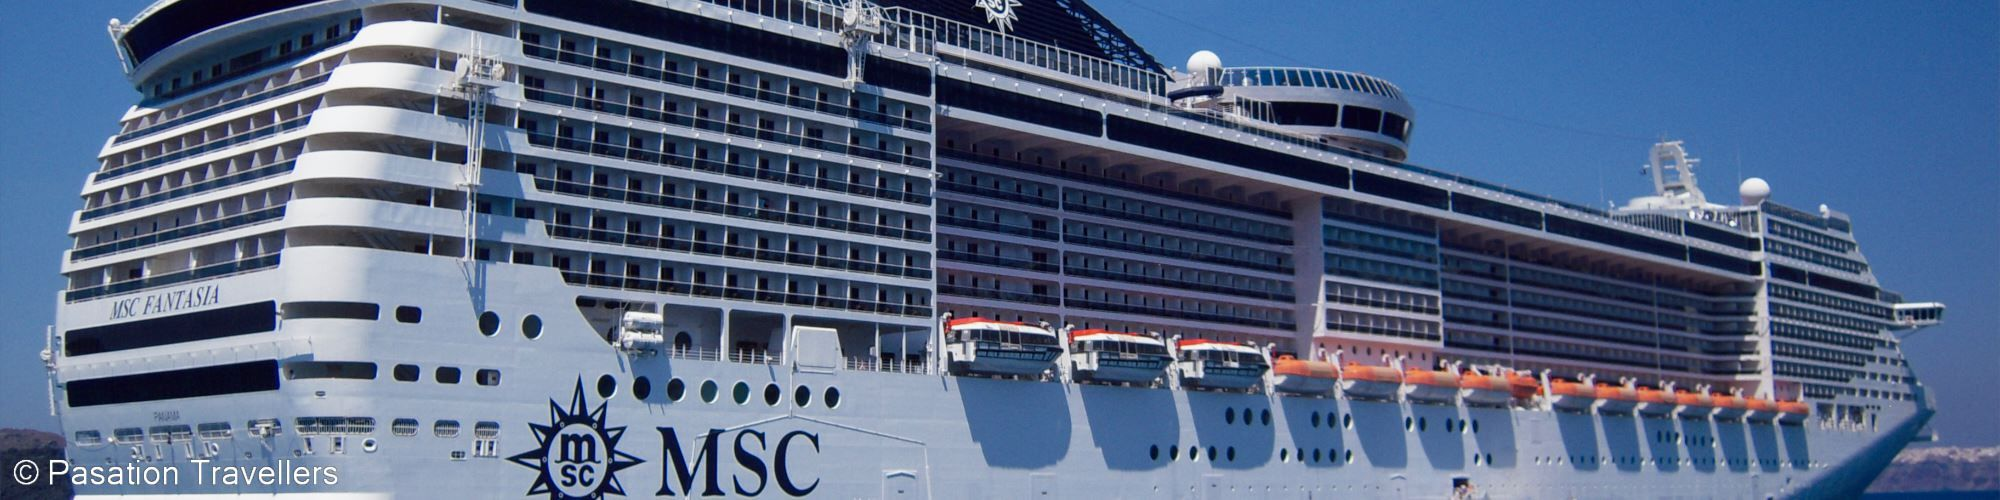 MSC Fantasia is truly a Fantastic Cruise